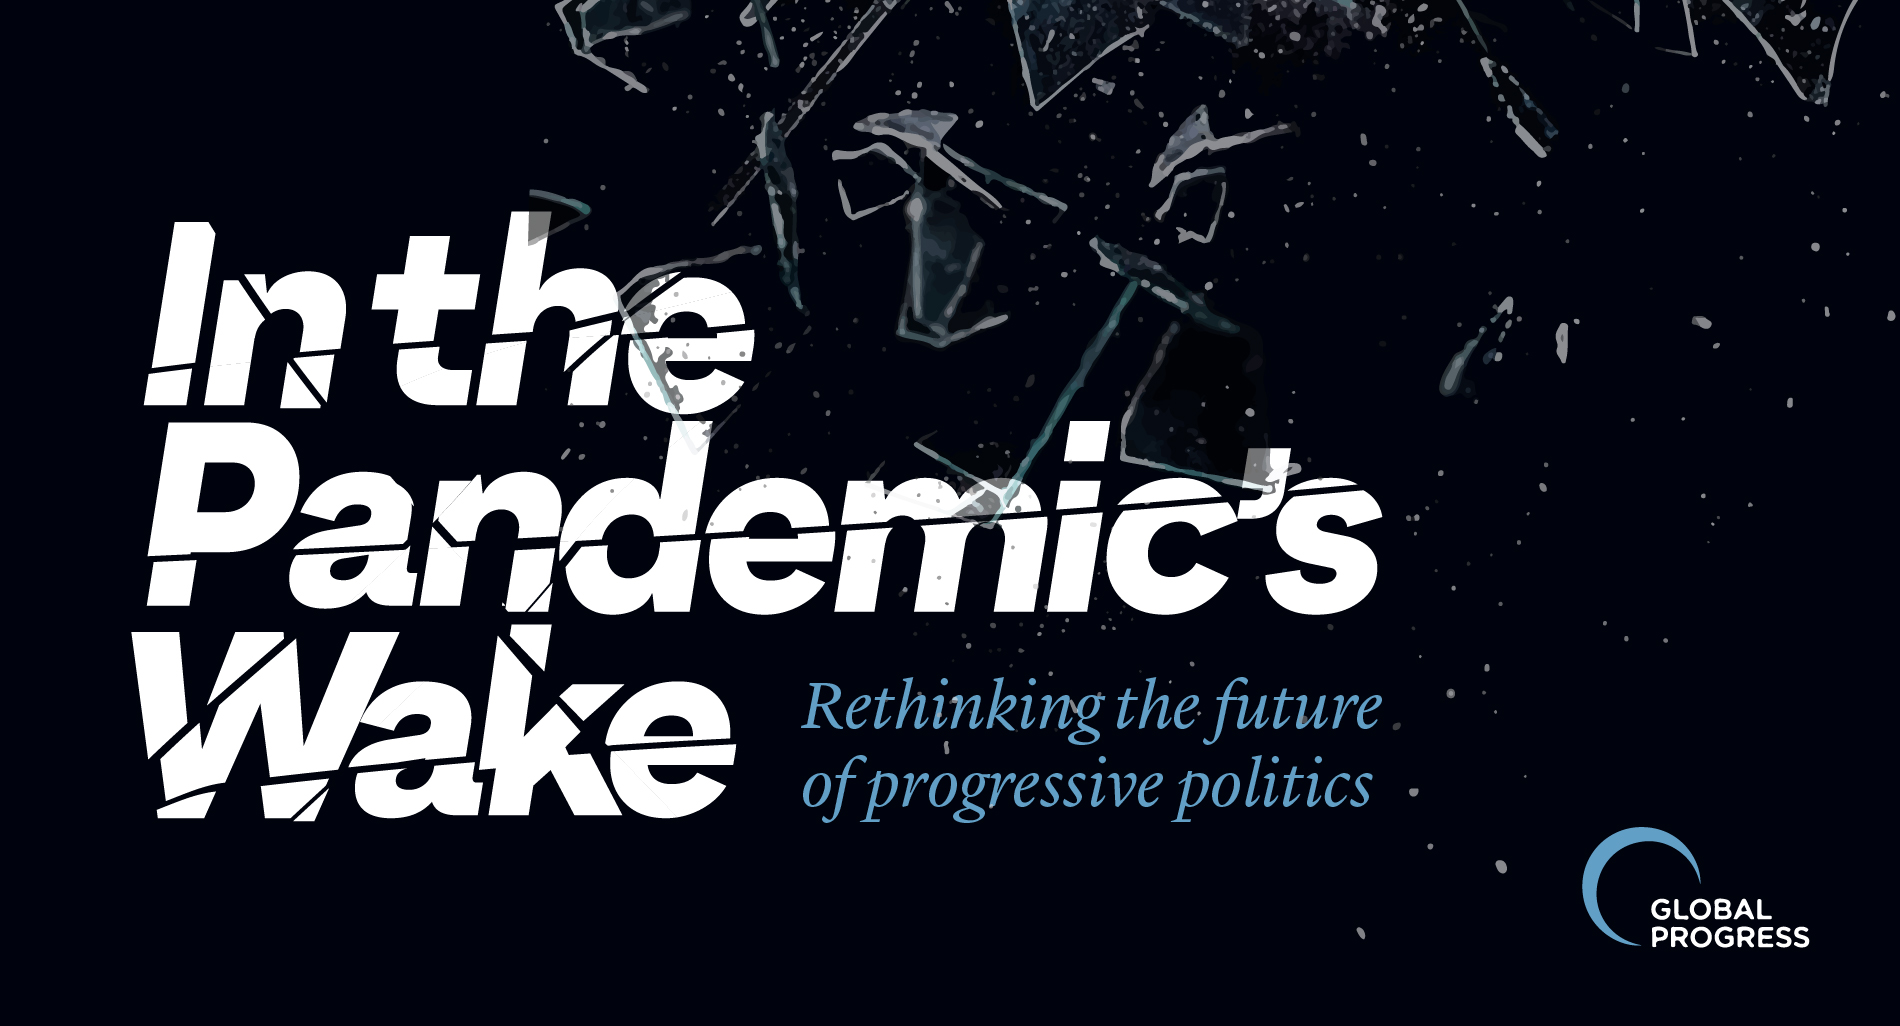 In the Pandemic's Wake: Rethinking progressive politics|Bringing together the challenges and opportunities for progressives published in Australia, Canada, France, Hungary, the Netherlands, Poland and the United Kingdom.